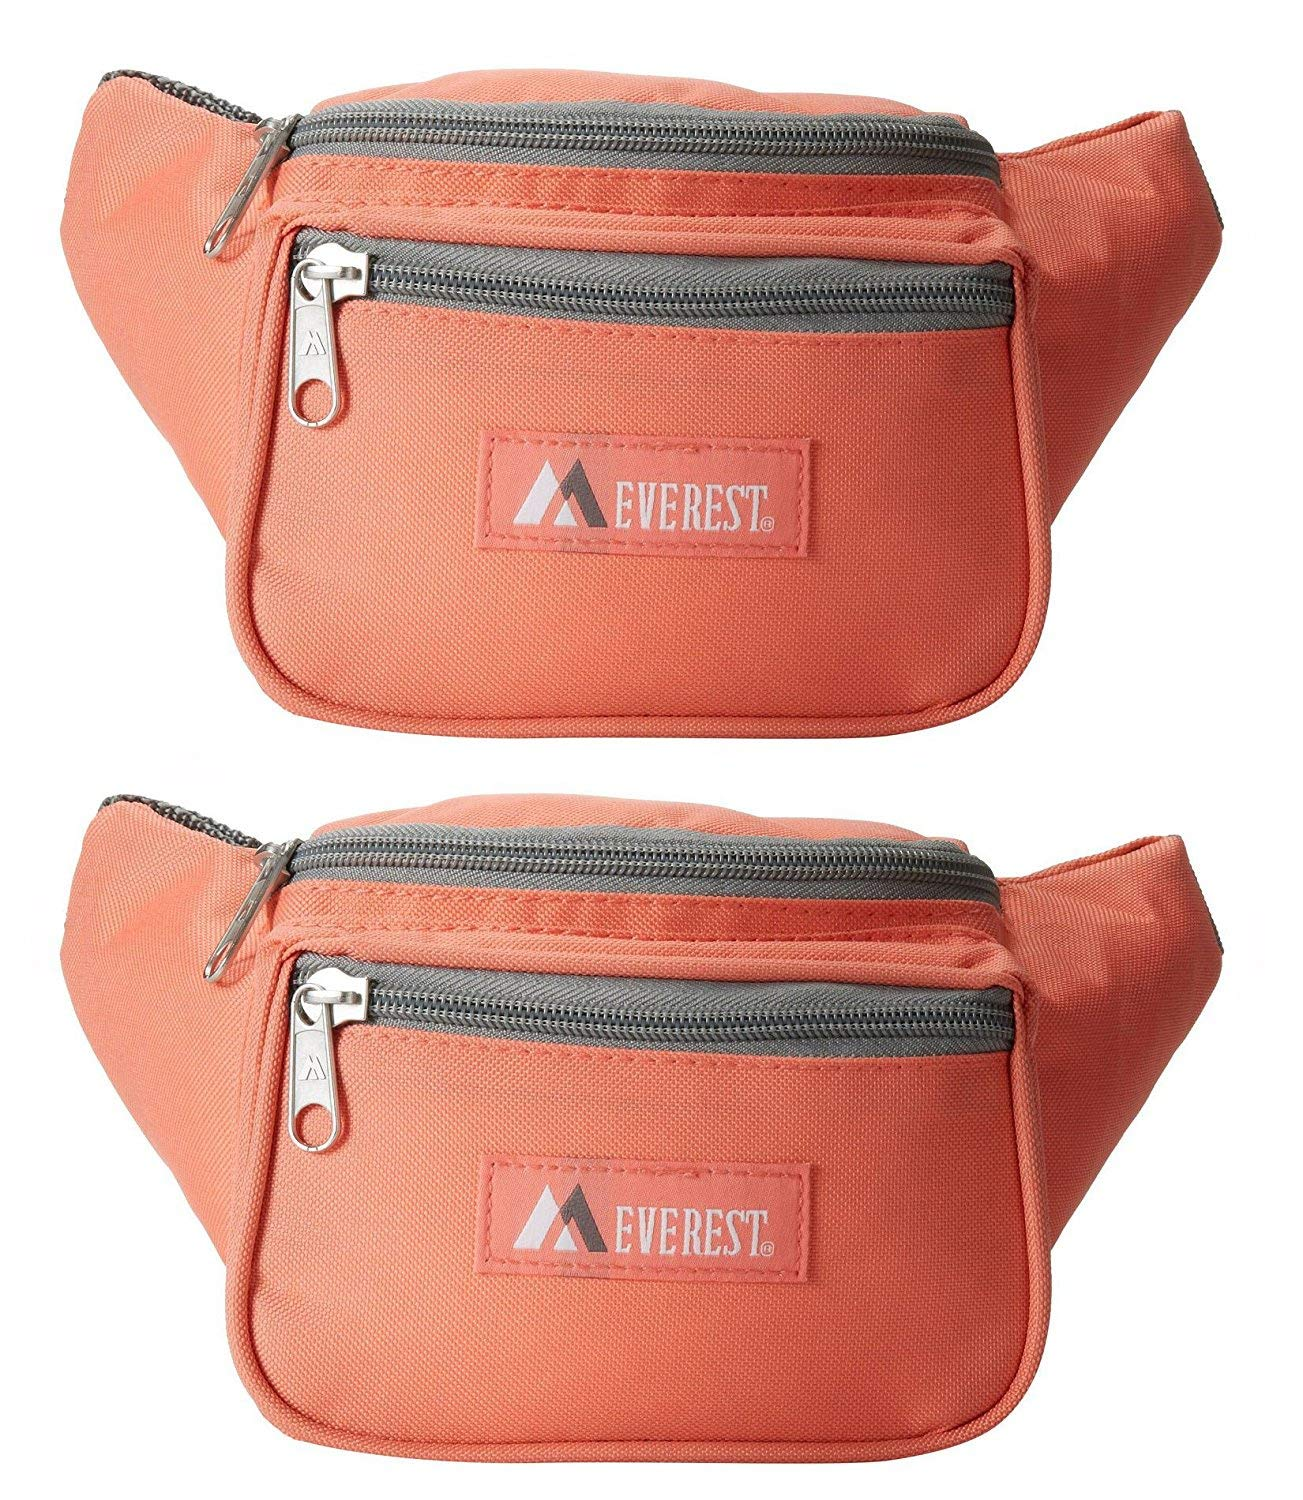 everest Signature Waist Fanny Pack Sets of Two